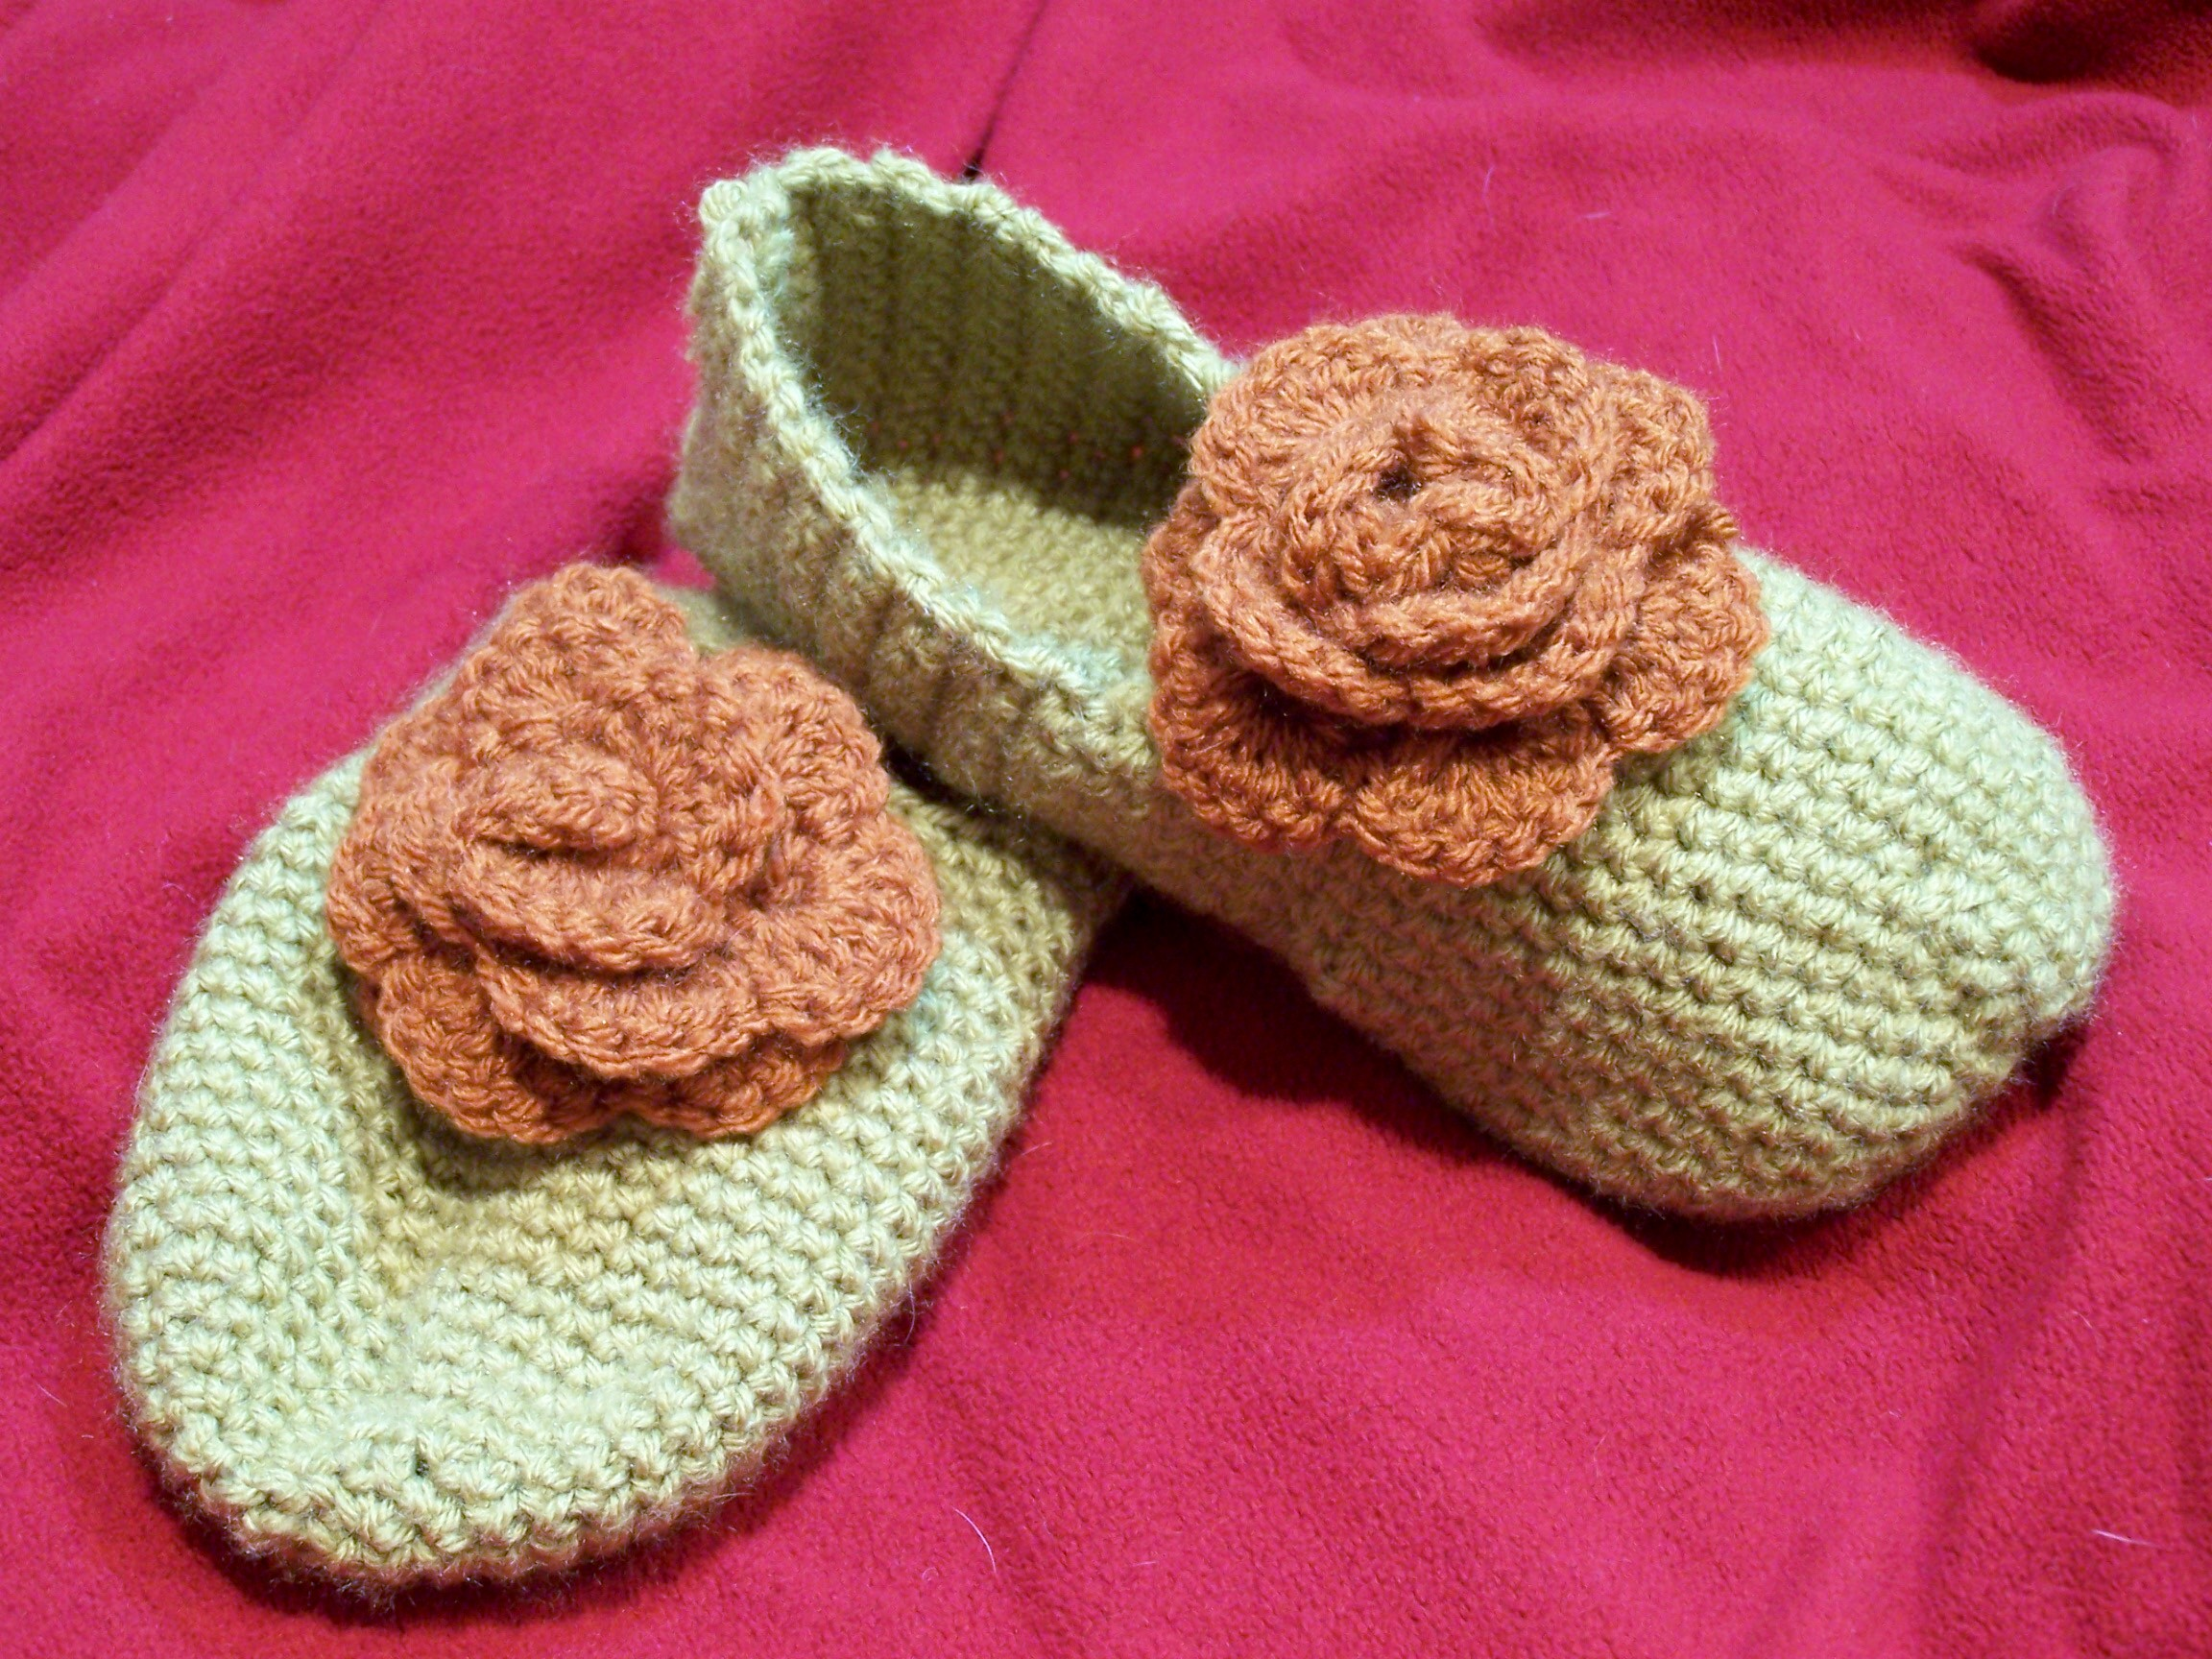 Crochet Patterns Only: Easy Comfy Crocheted Slippers